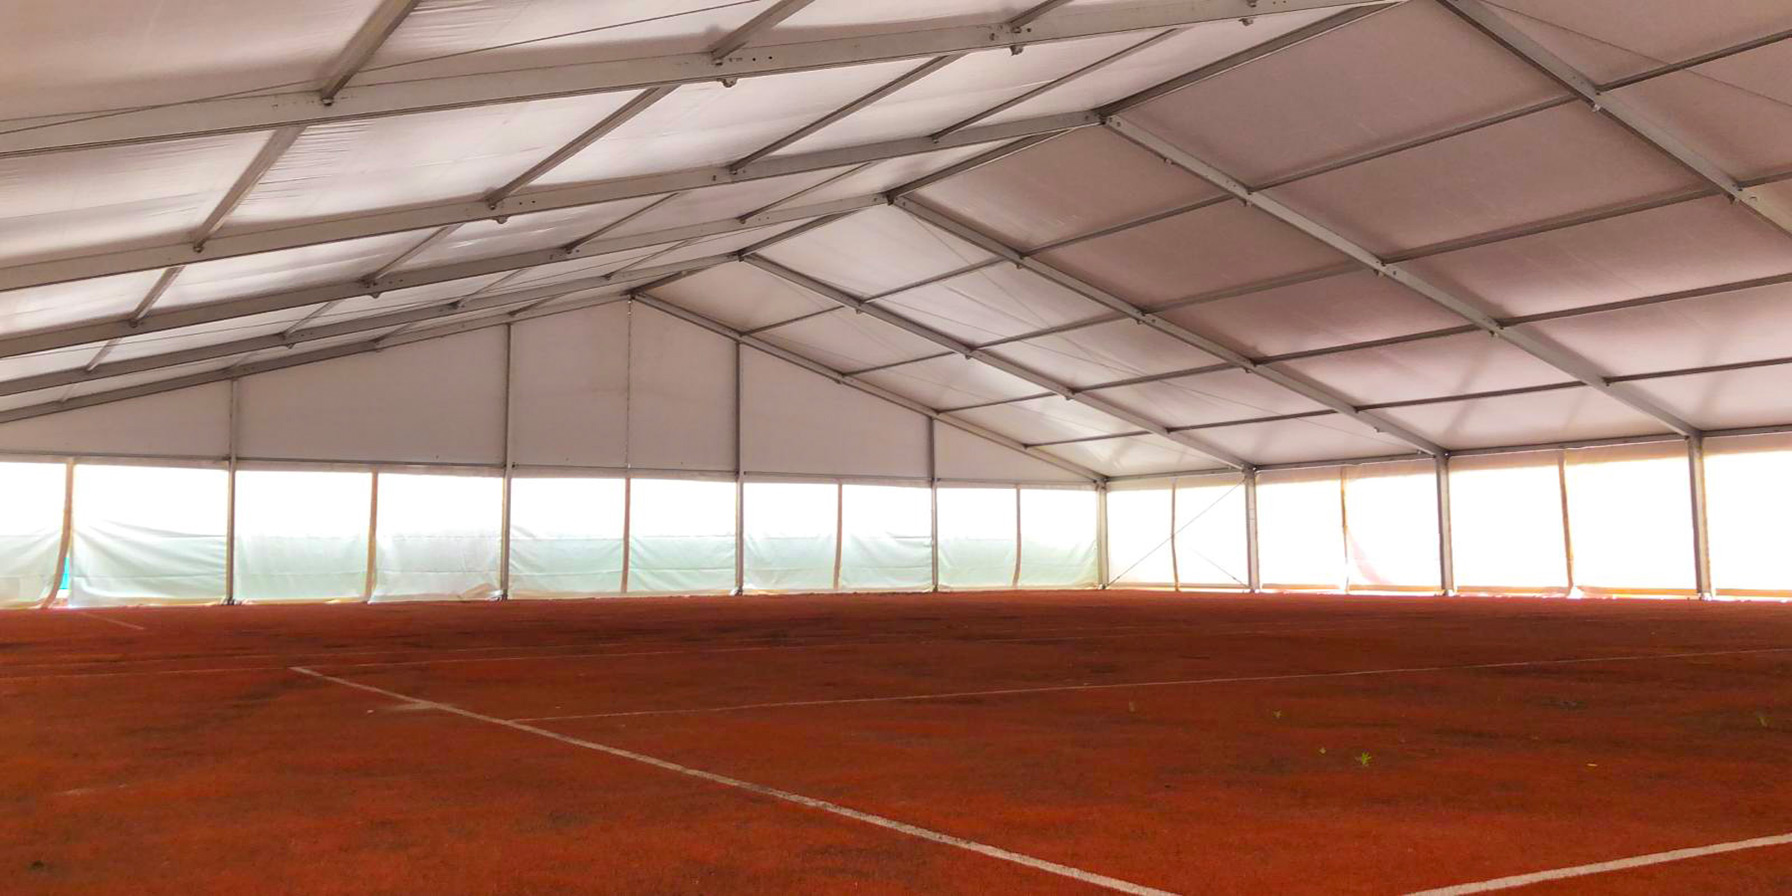 Tent as sportaccommodation